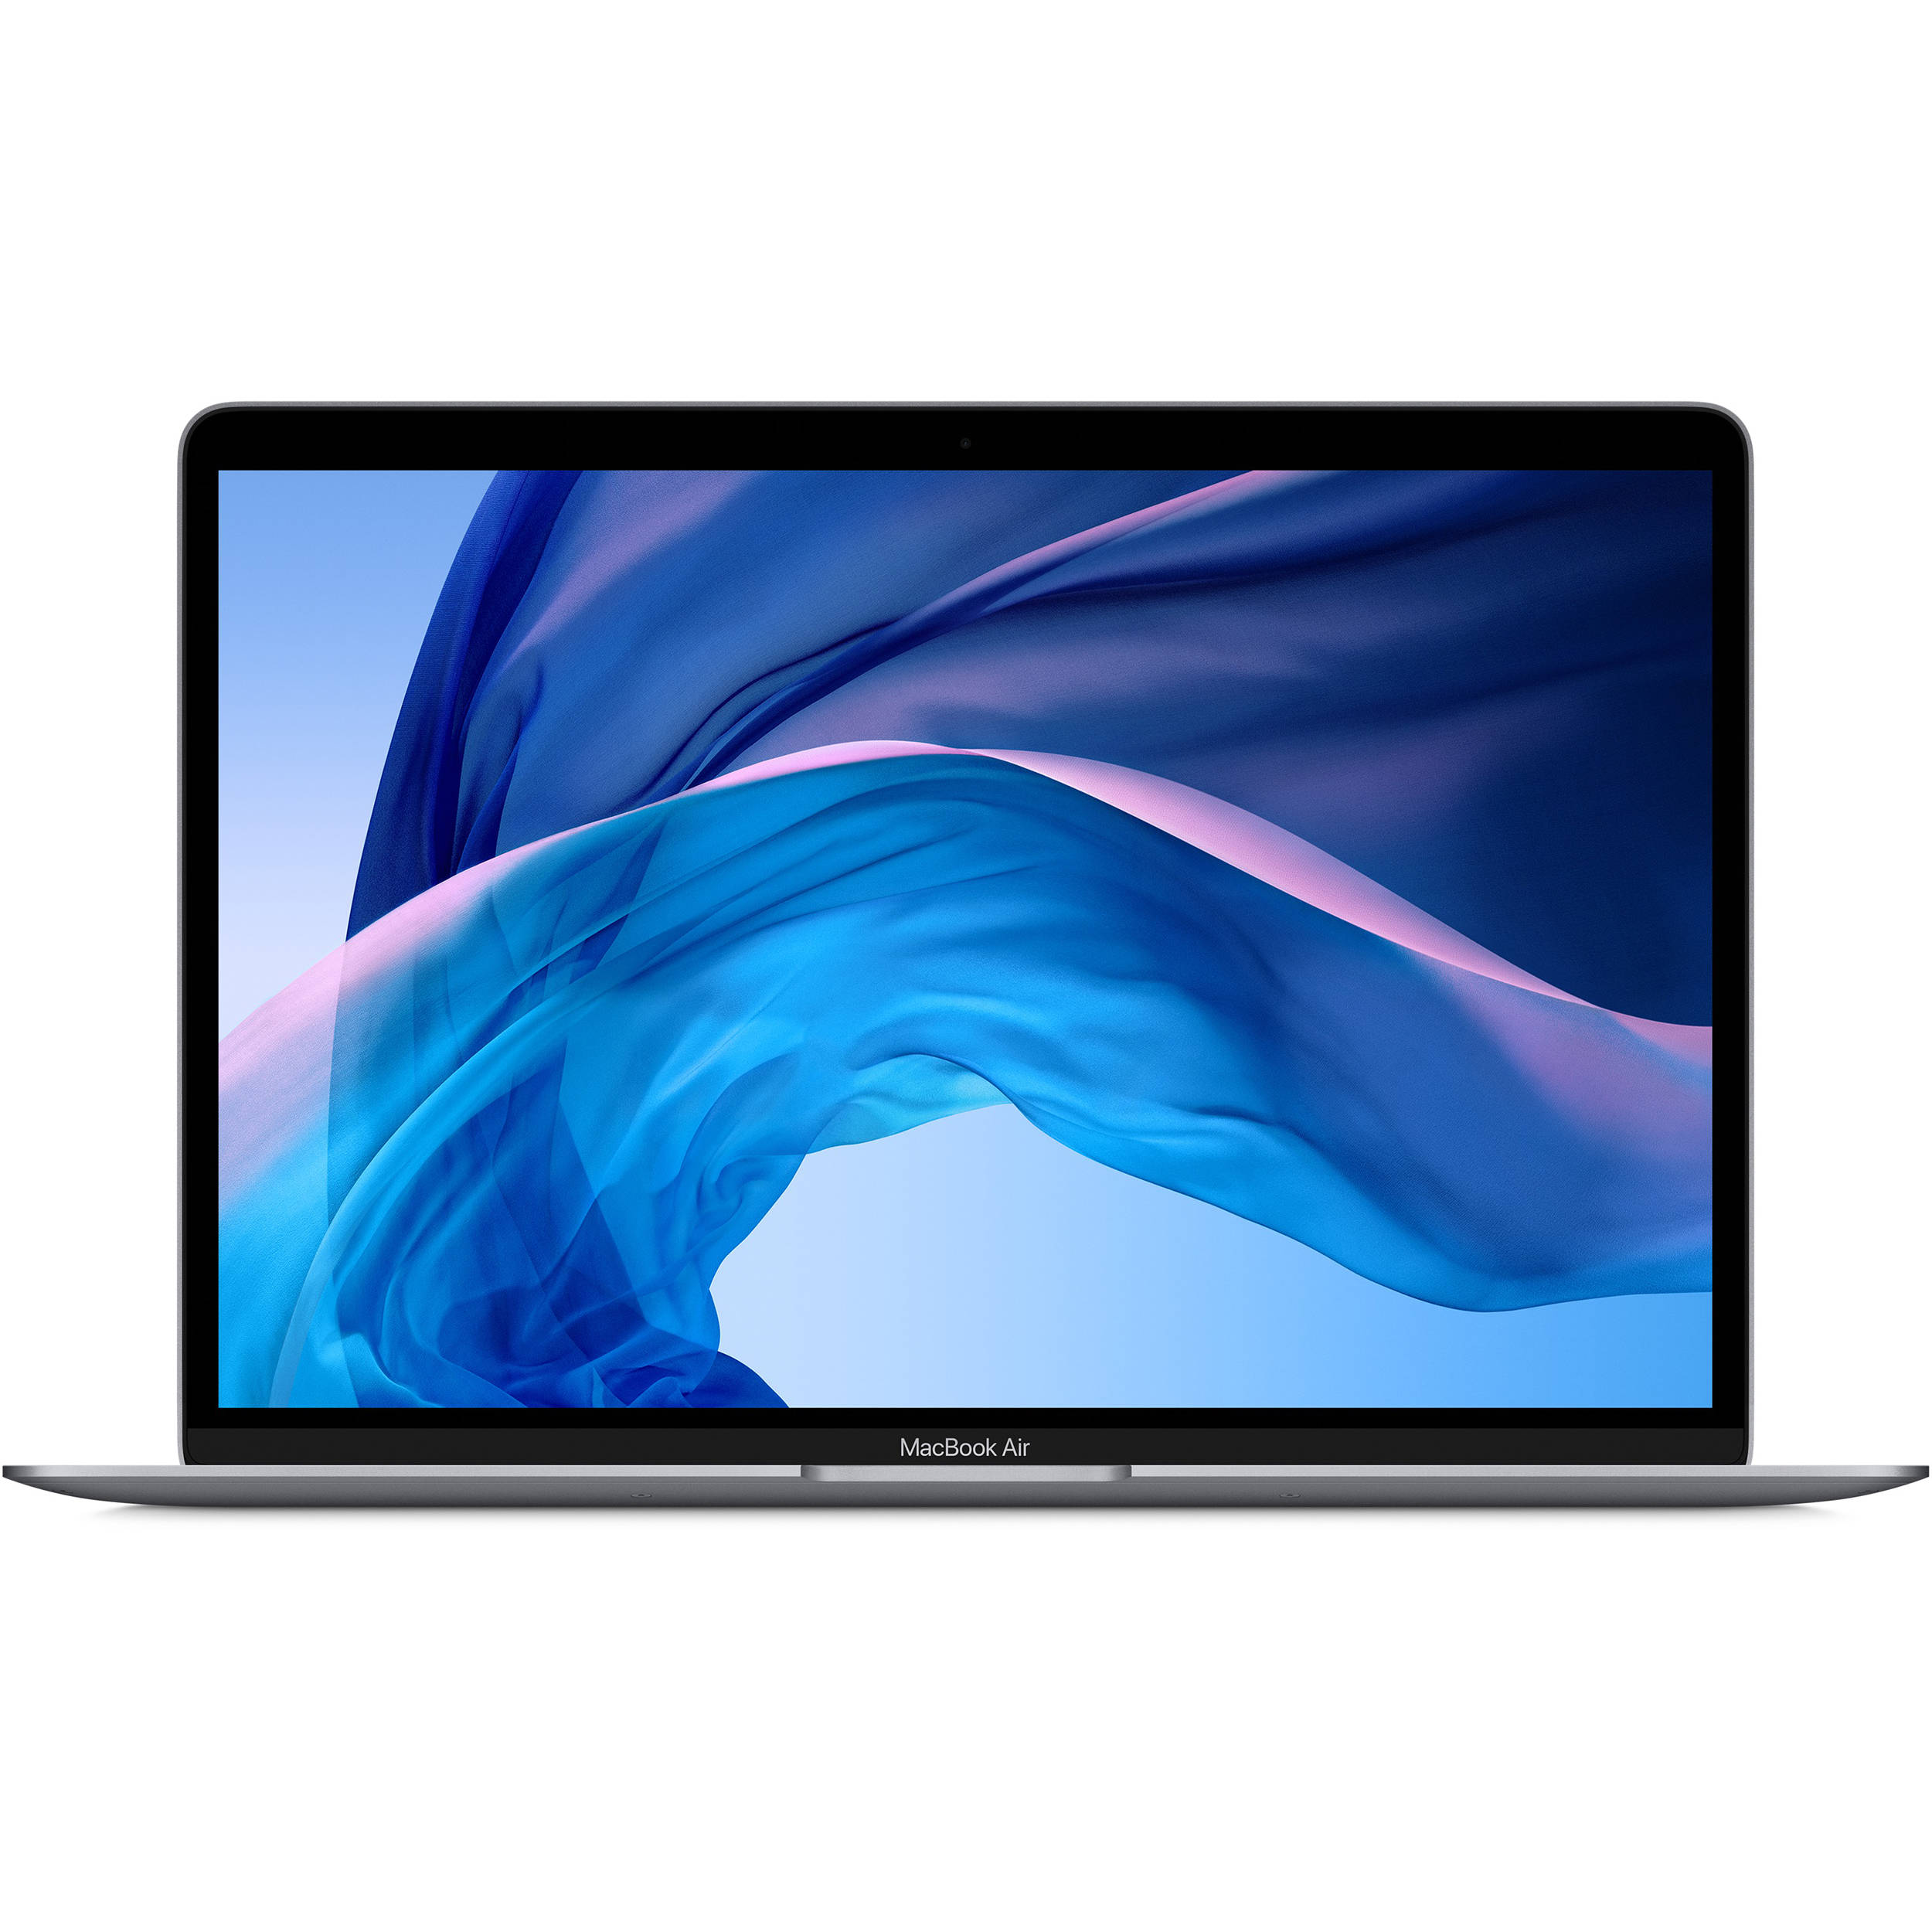 Image of Apple MacBook Air (2020) 13-inch Intel Core i5 8GB 512GB H22 - Grey (US Keyboard)